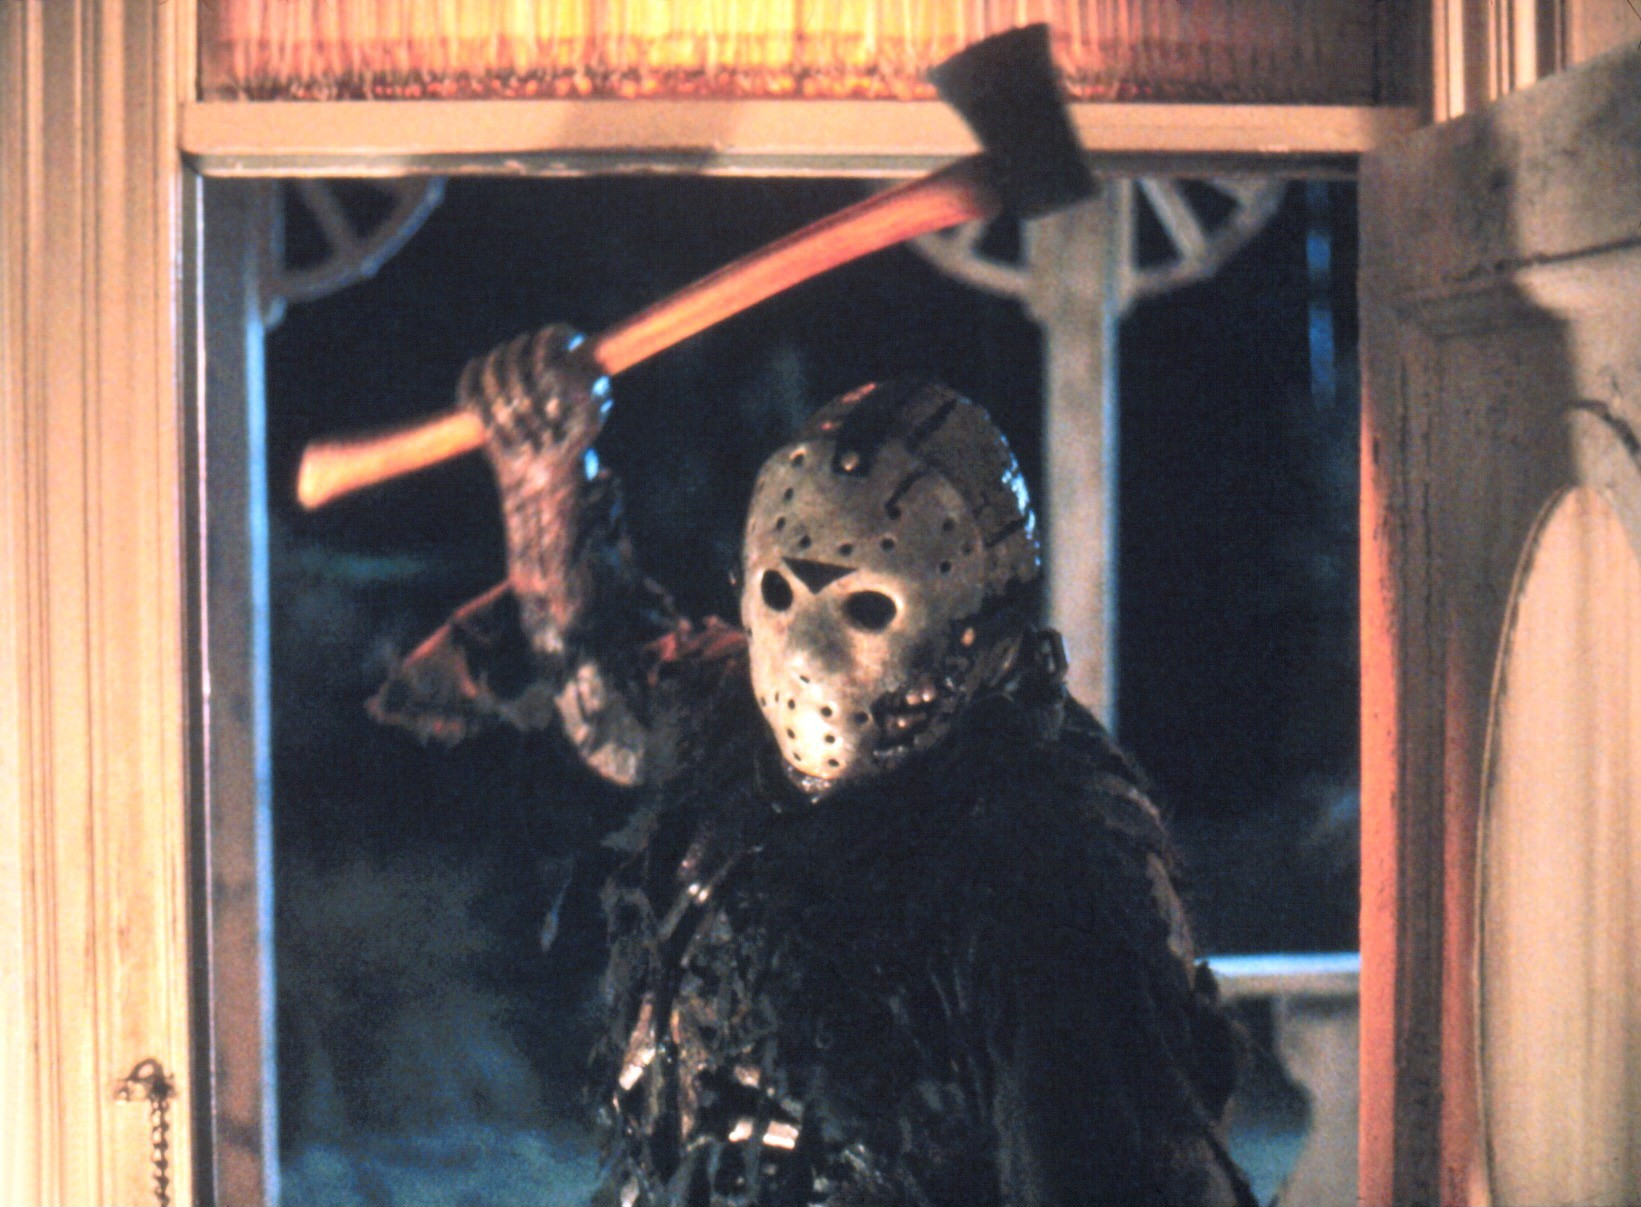 FREITAG DER 13. - 7. TEIL - Jason im Blutrausch (Friday the 13th - Part VII - The new blood; USA 1988) Horror / Beil, Gewaltd